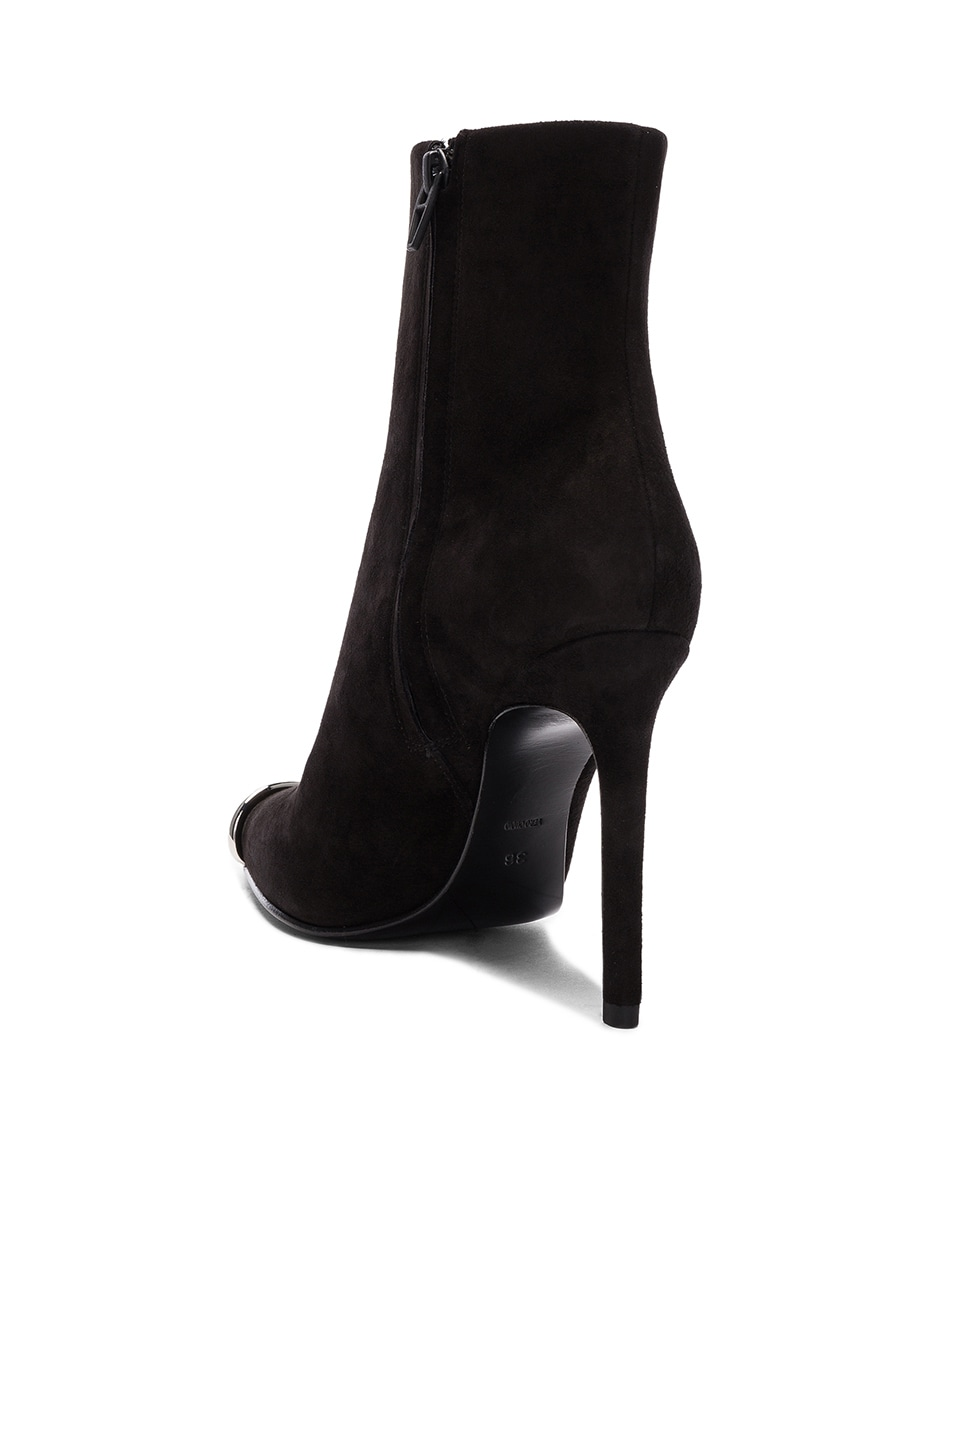 Image 3 of Alexander Wang Suede Kinga Boots in Black Suede